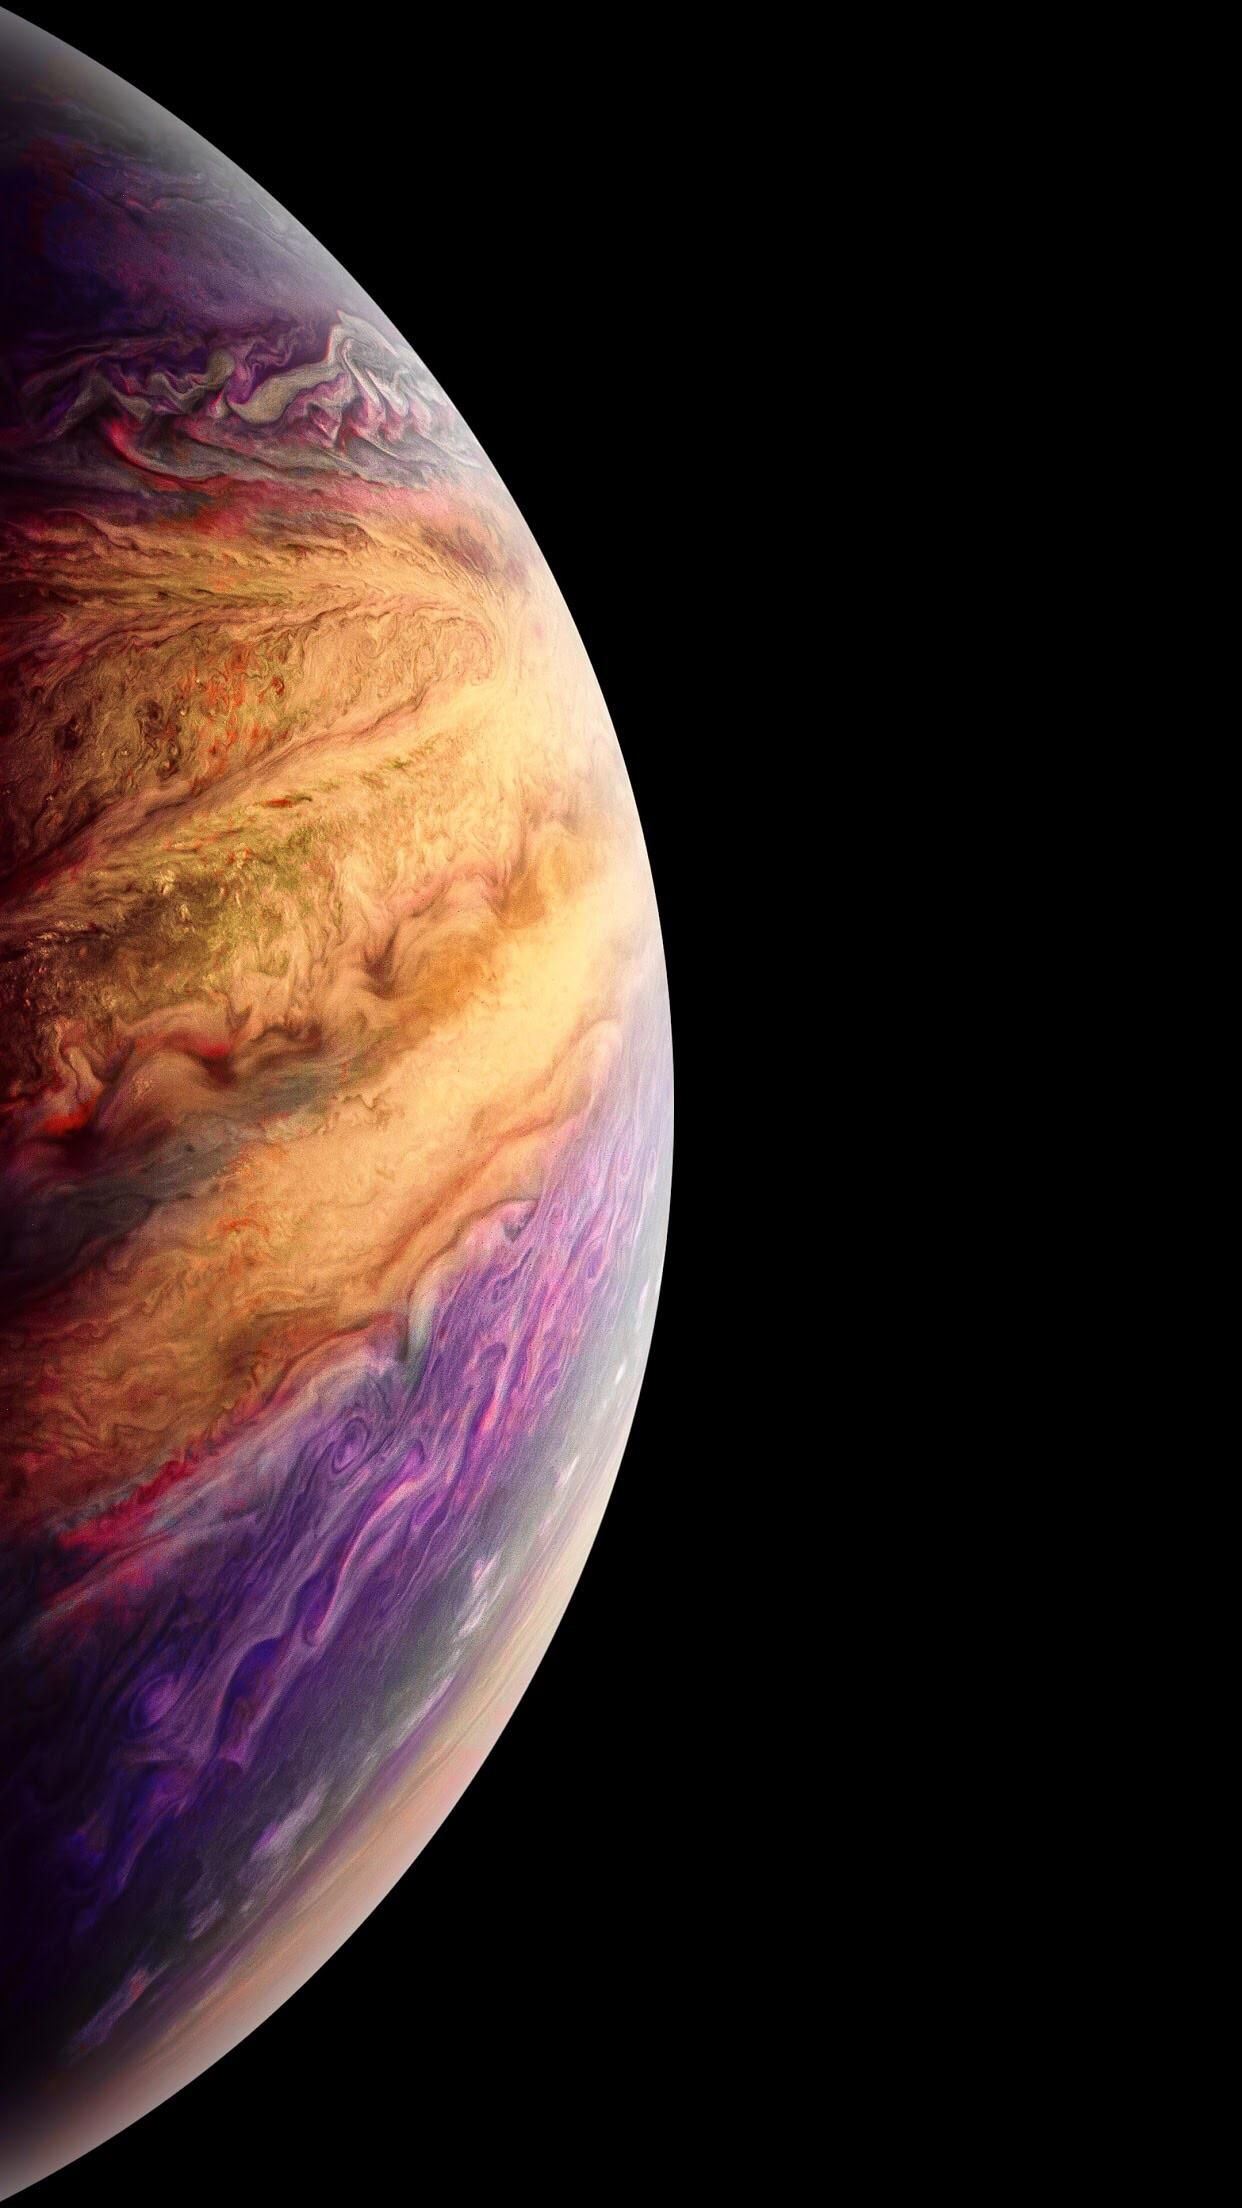 Iphone Xs Alternative Wallpaper Hd Quality Iphone Xs Iphone